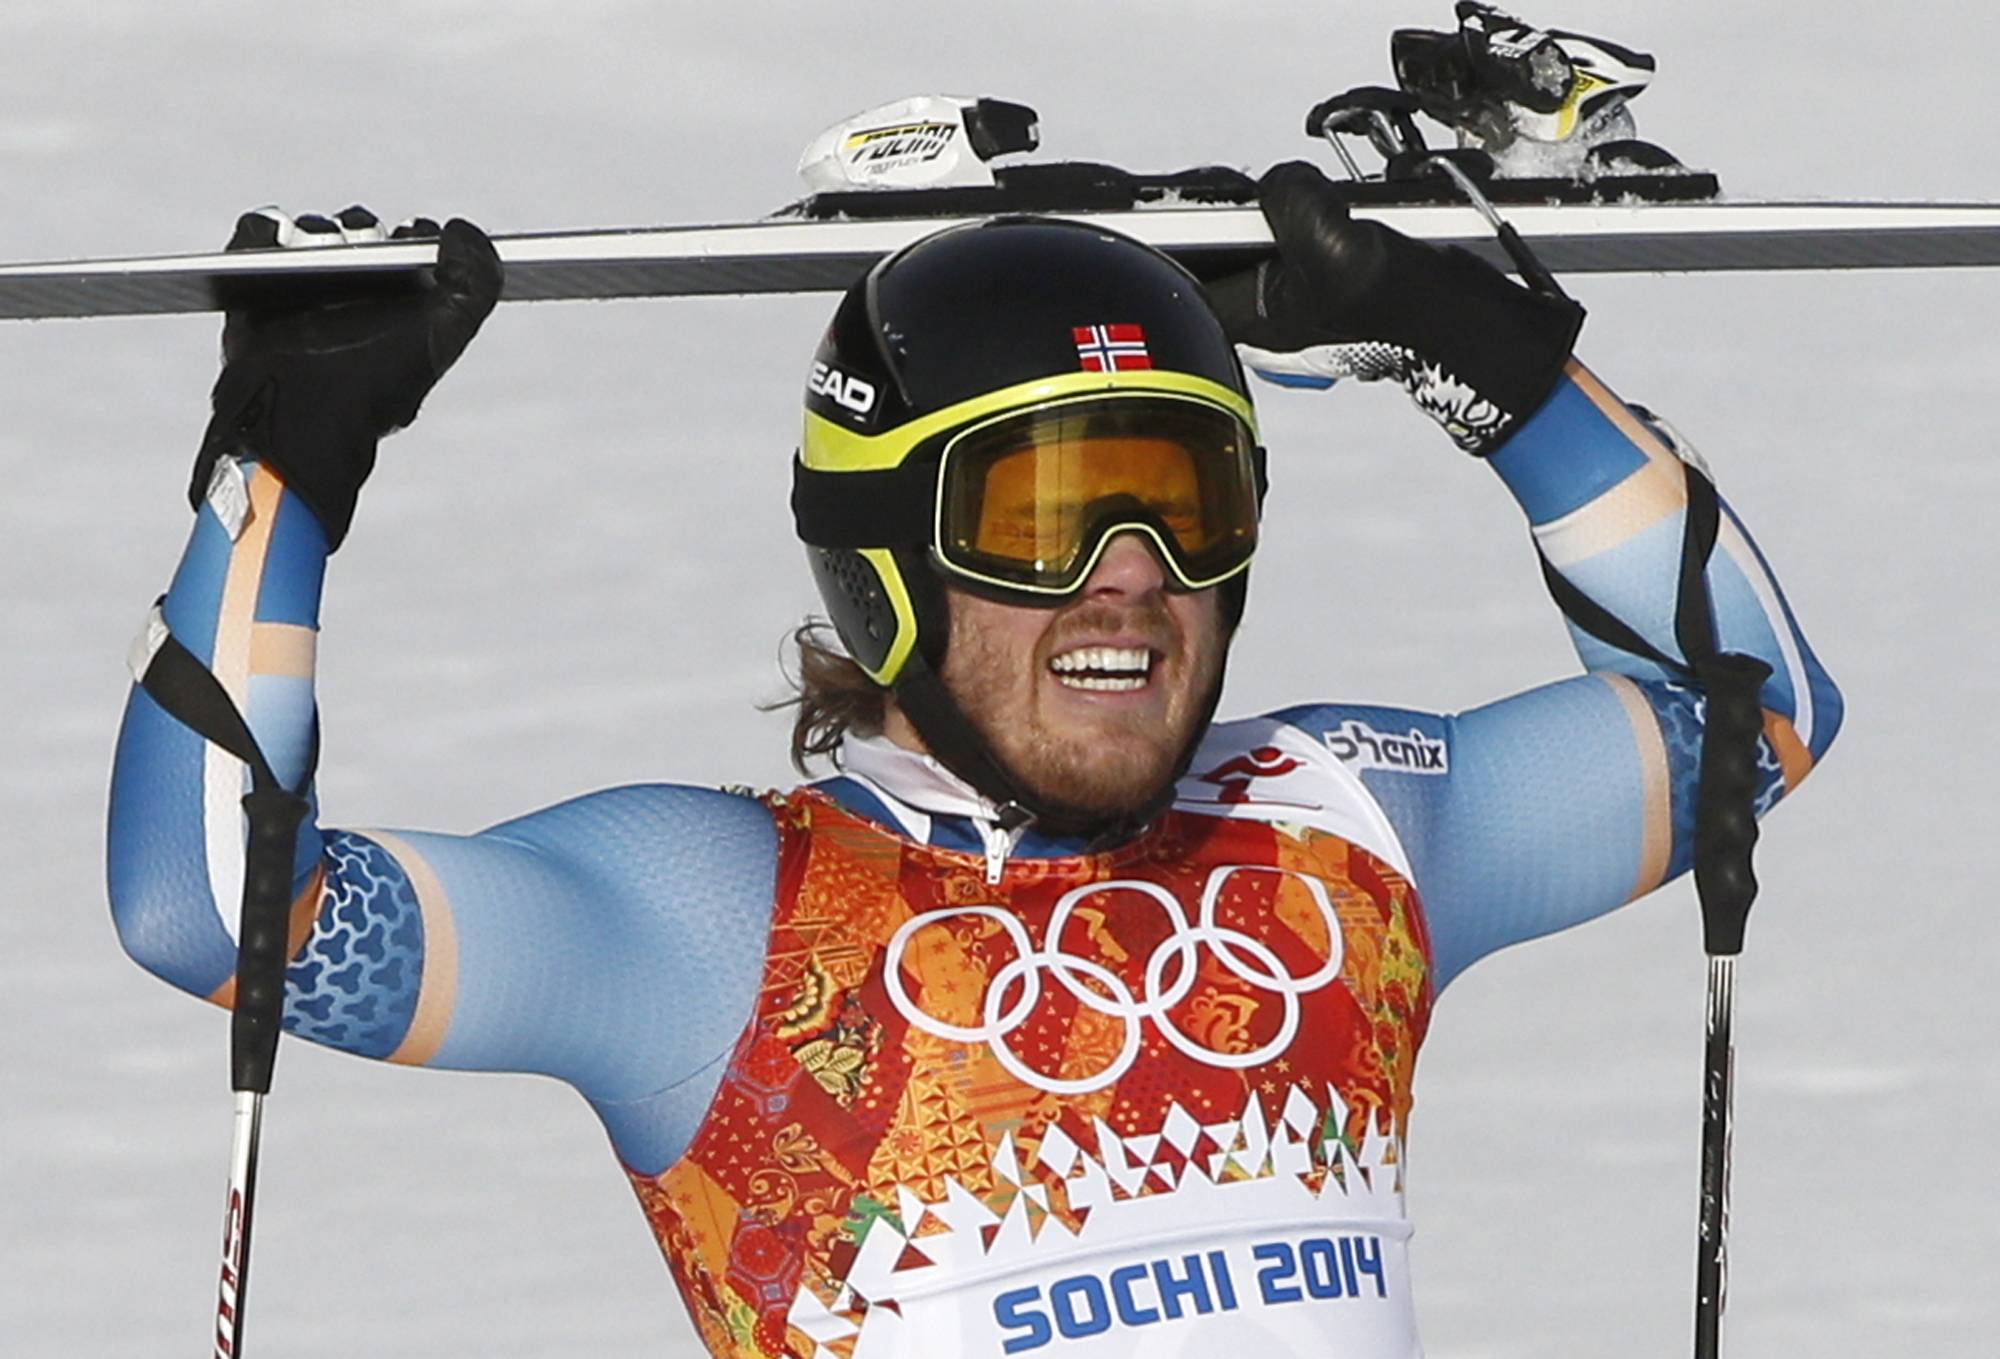 Norway's Kjetil Jansrud celebrates his first-place finish in the men's super-G at the Sochi 2014 Winter Olympics, Sunday, Feb. 16, 2014, in Krasnaya Polyana, Russia.